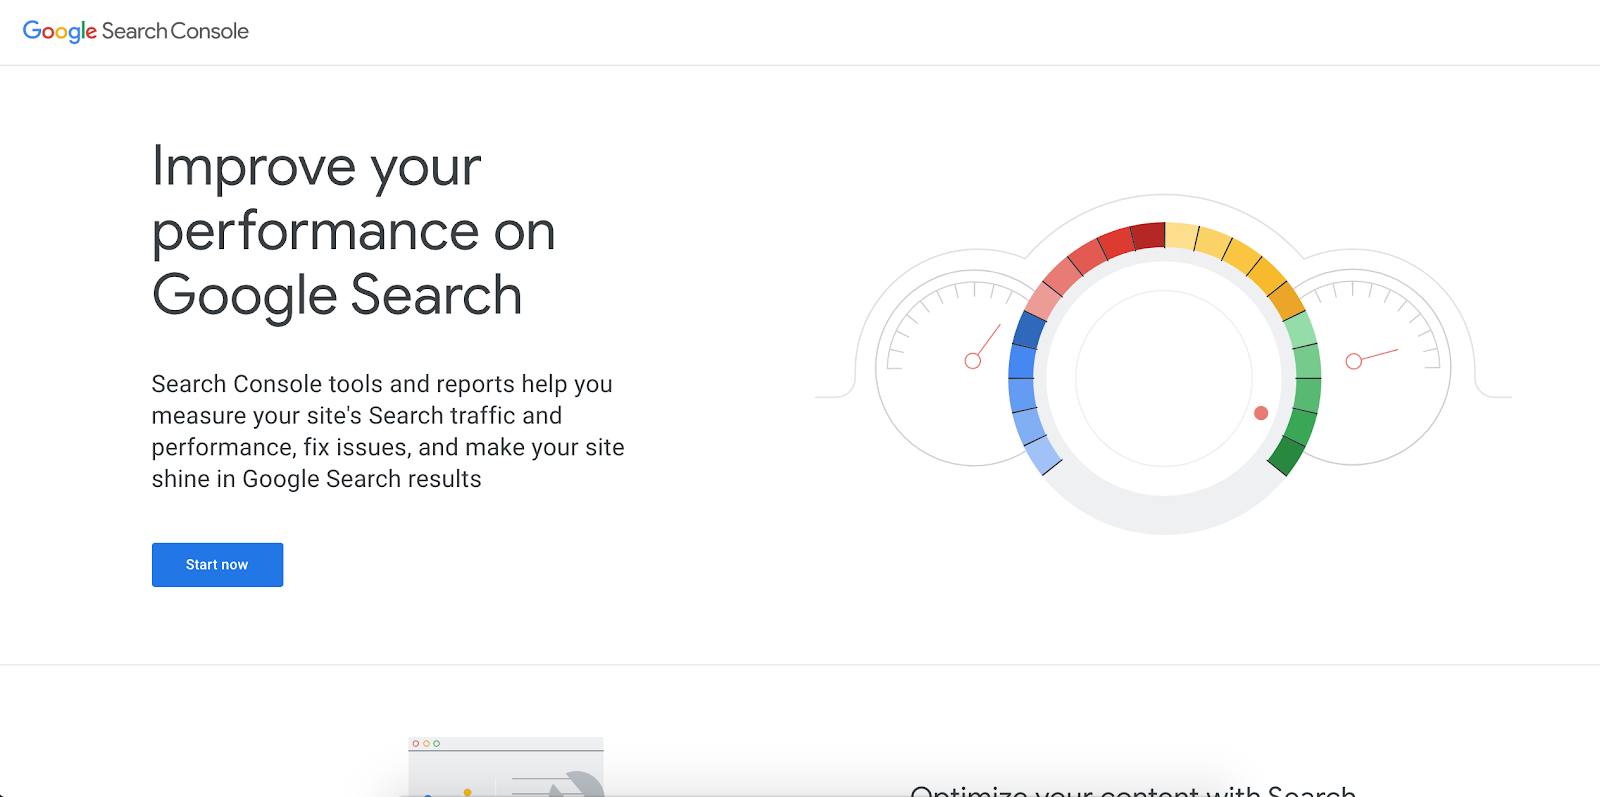 Top Marketing Tool Example #1 - Google Search Console | 16 Powerful Marketing Tools You Haven't Considered (But Probably Should)